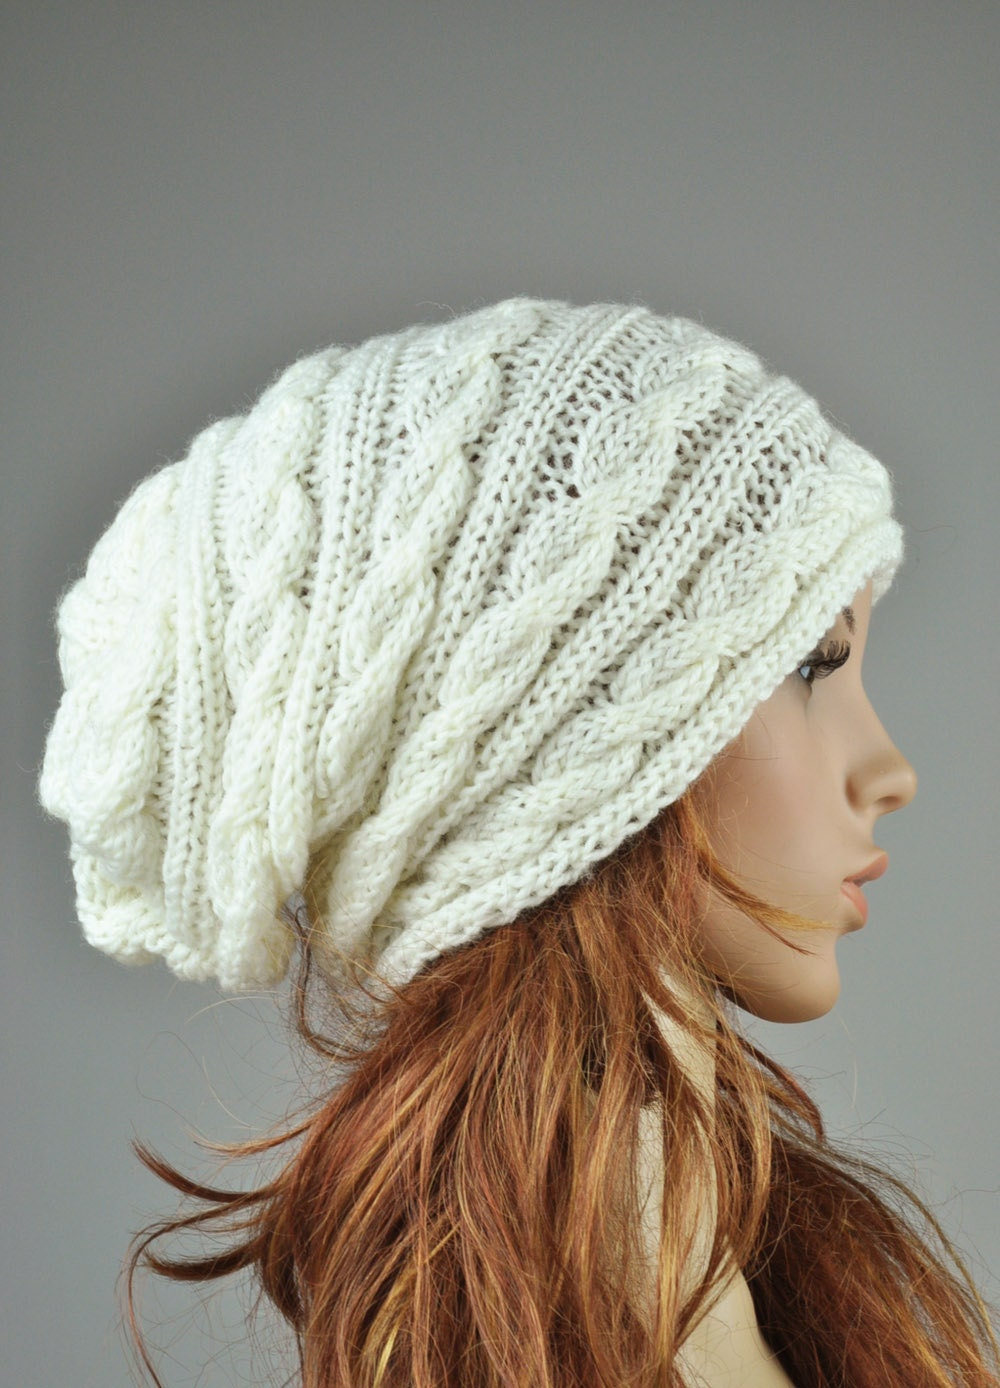 Hand Knitted Hat Patterns : Hand knit woman hat cable pattern hat in cream slouchy hat